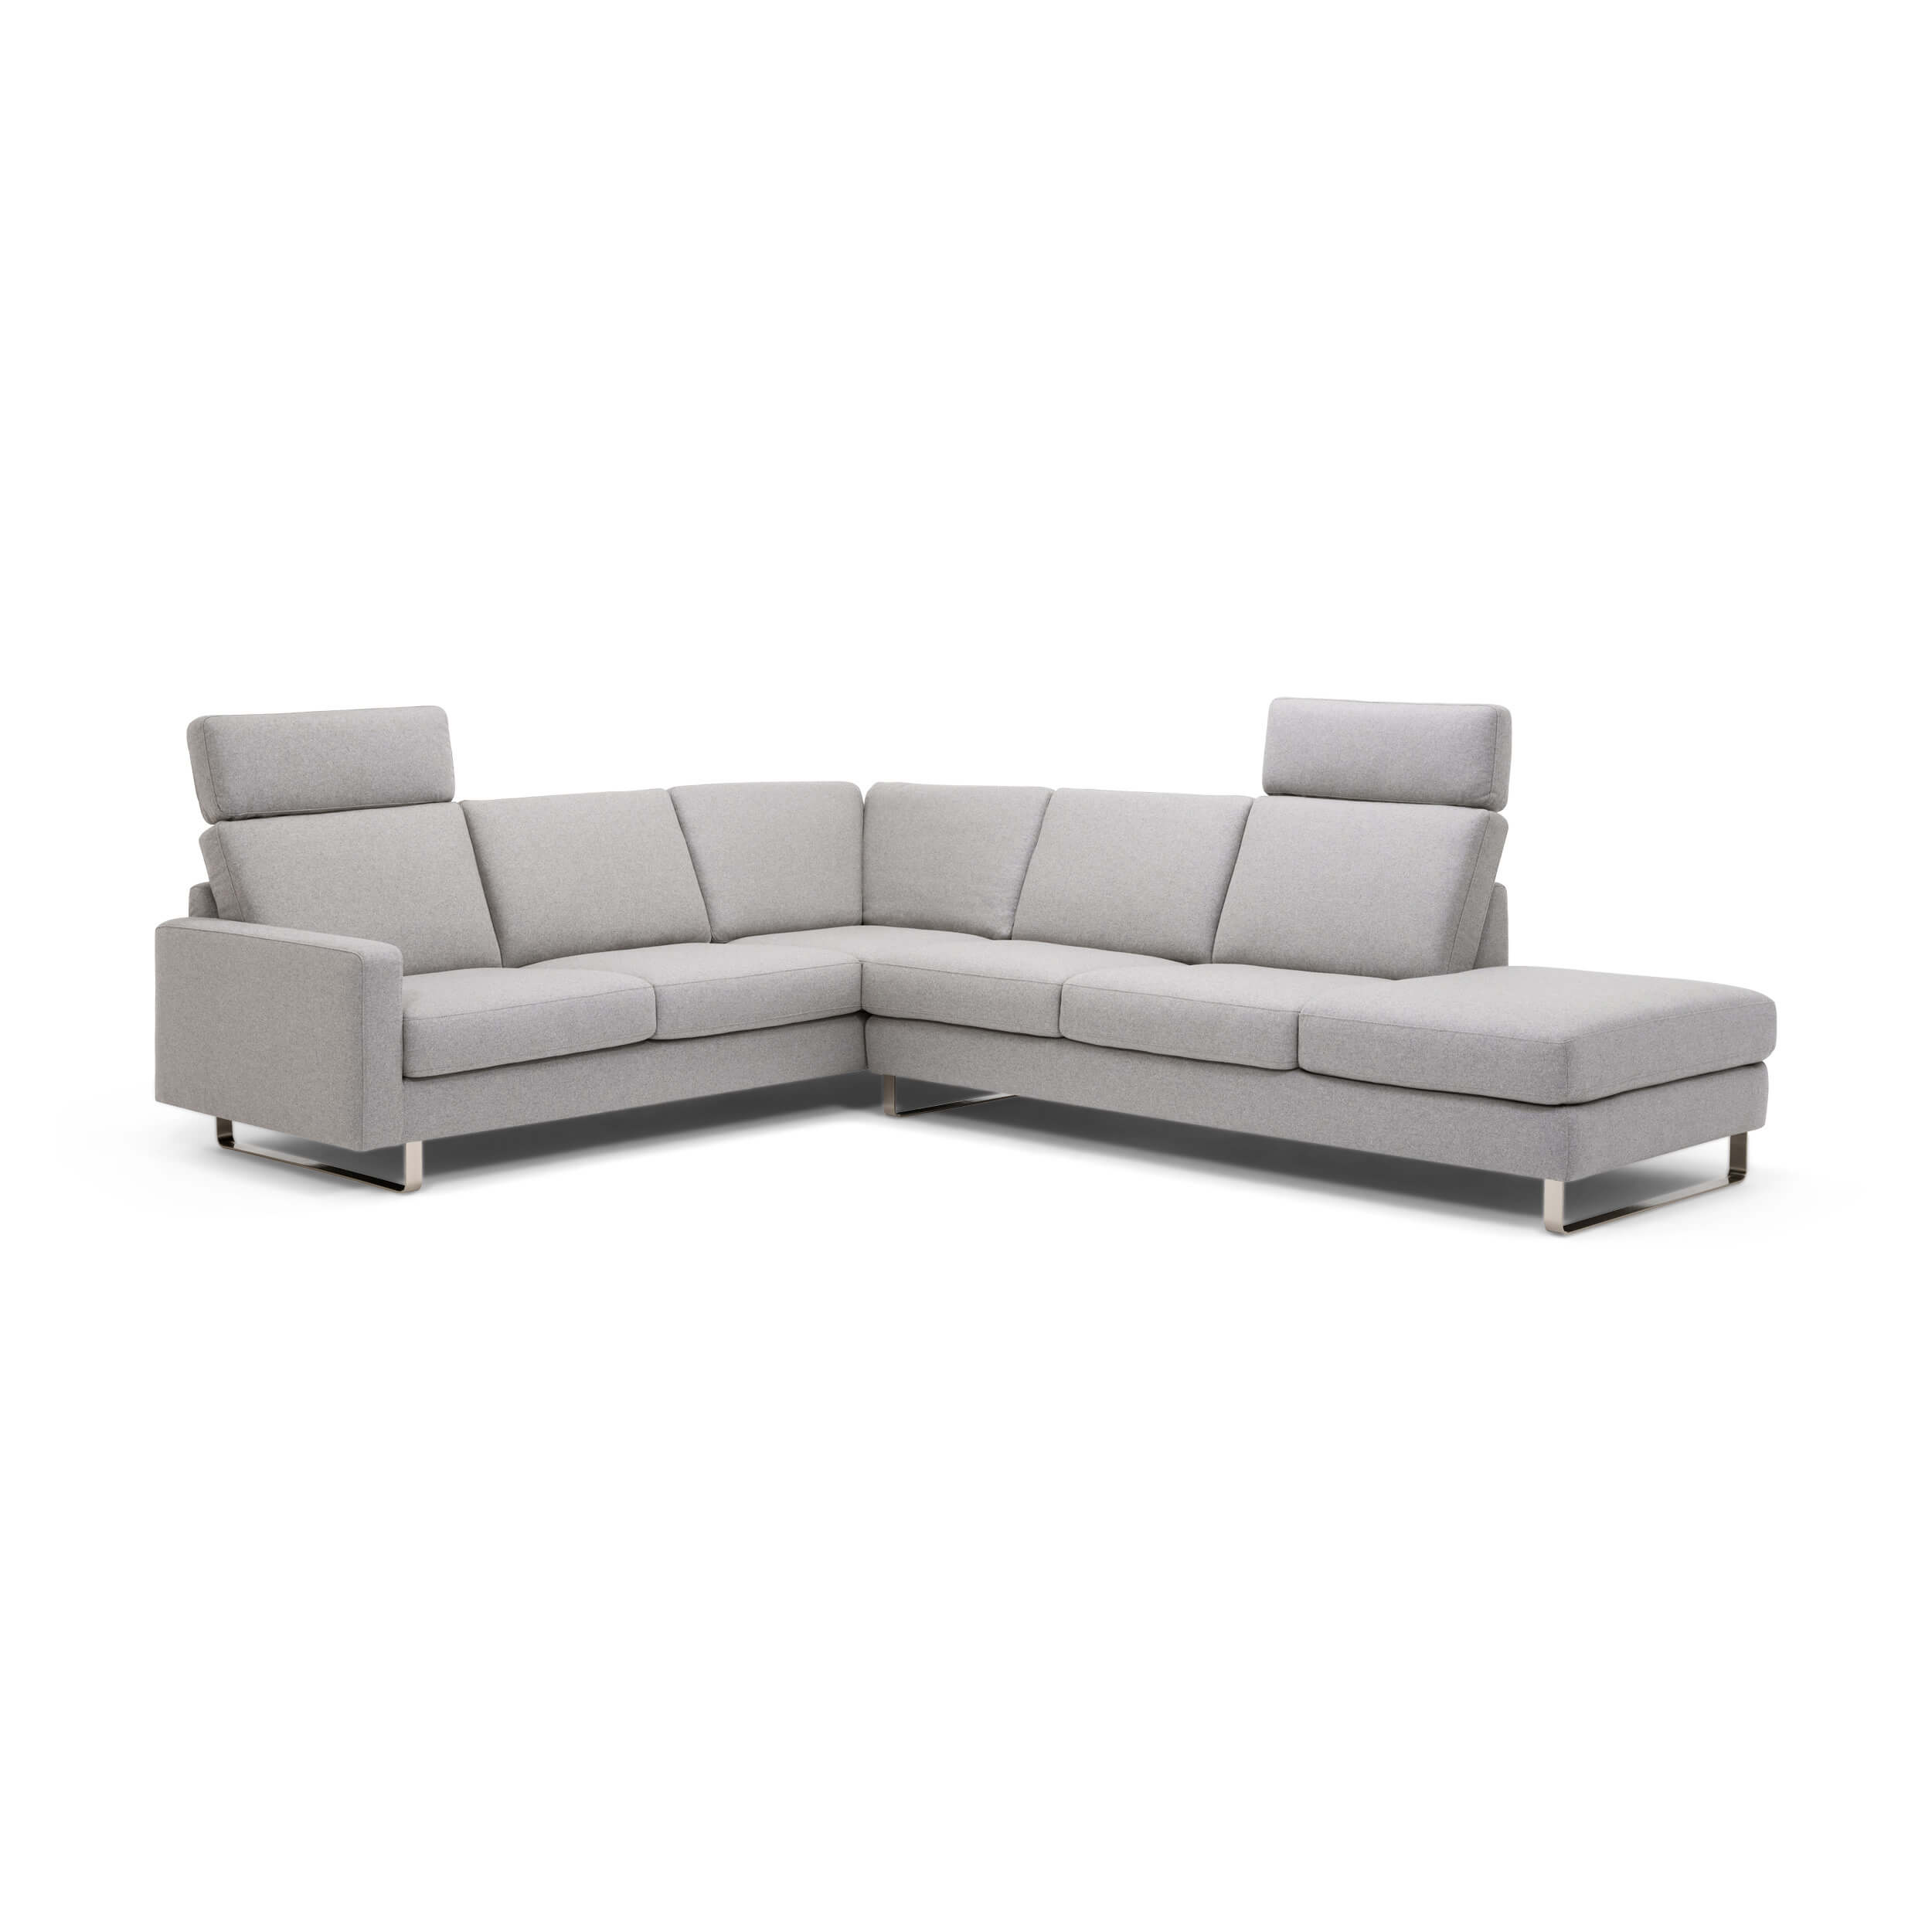 Oskar 2-Piece Sectional Sofa With Headrests - Fabric